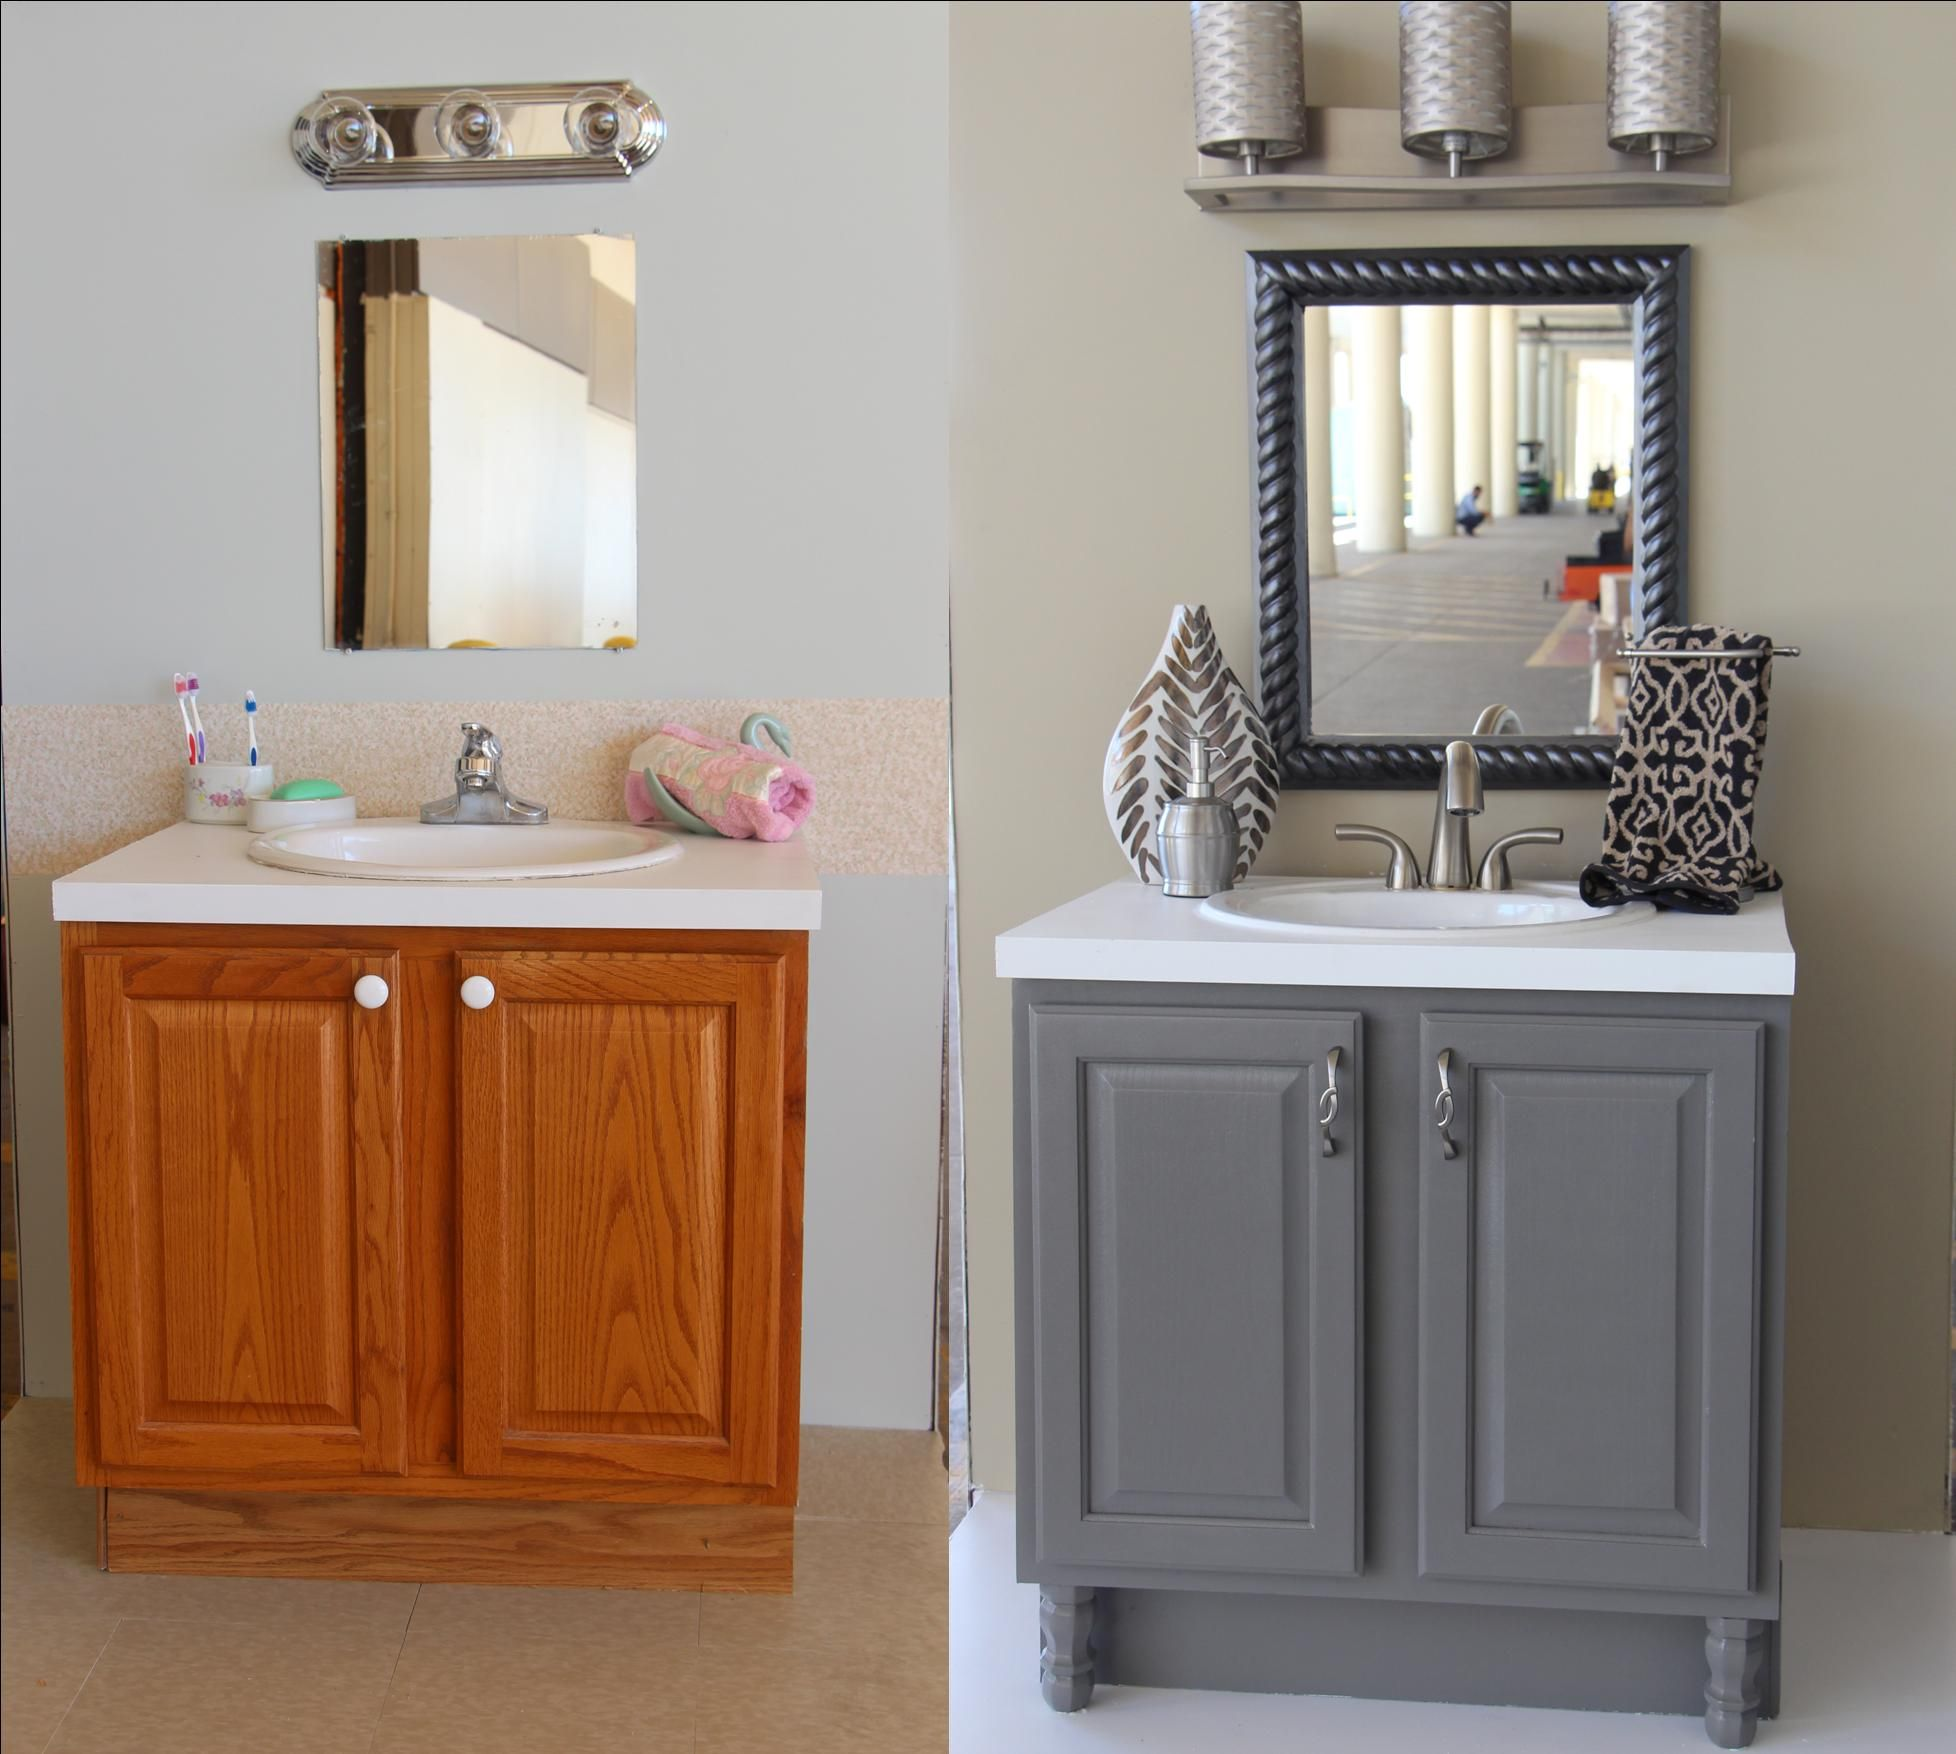 Trendsetter Bath Before And After With Accessories Upcycled Bathroom Ideas ( Diy Bathroom Remodel)